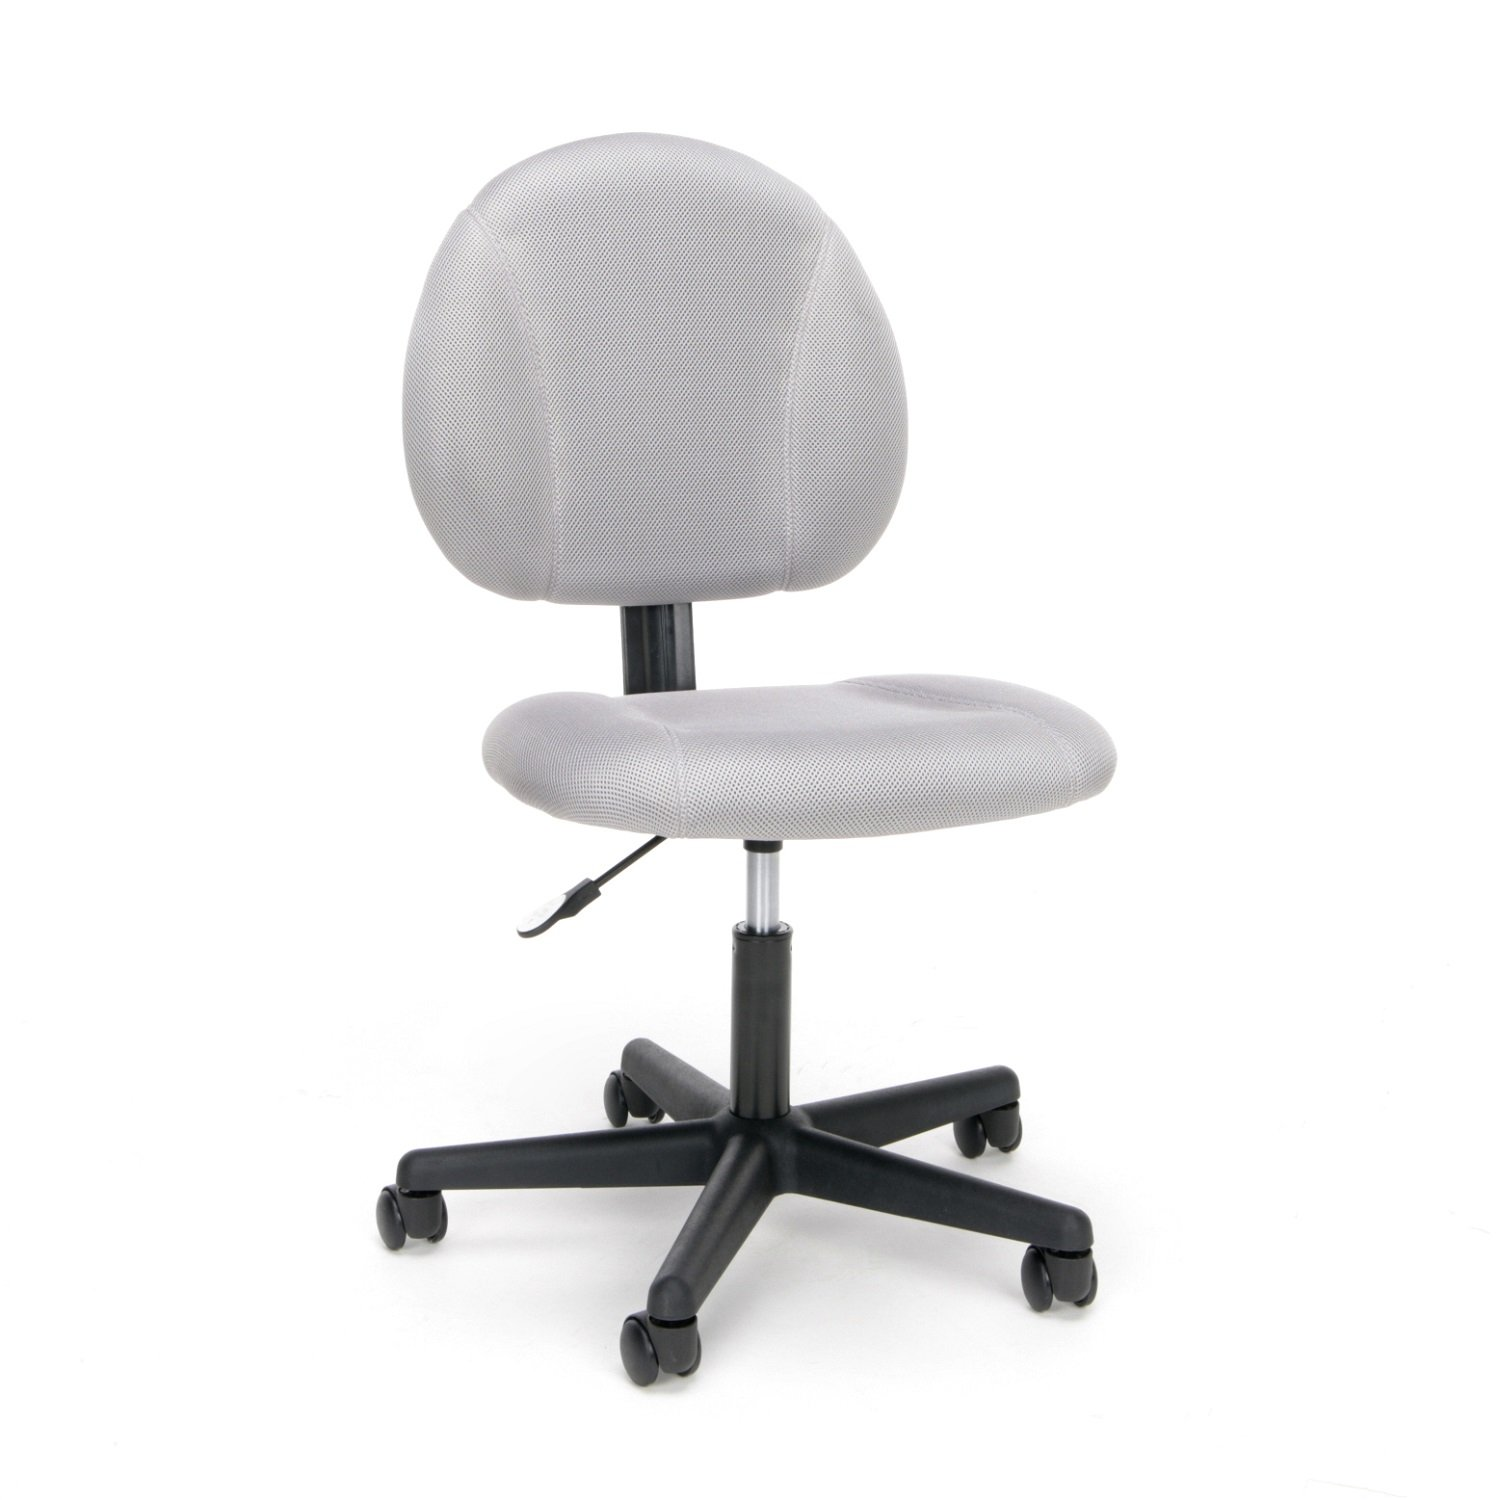 Essentials ESS-3060 Swivel Upholstered Armless Task Chair – Ergonomic Computer Office Chair, Gray